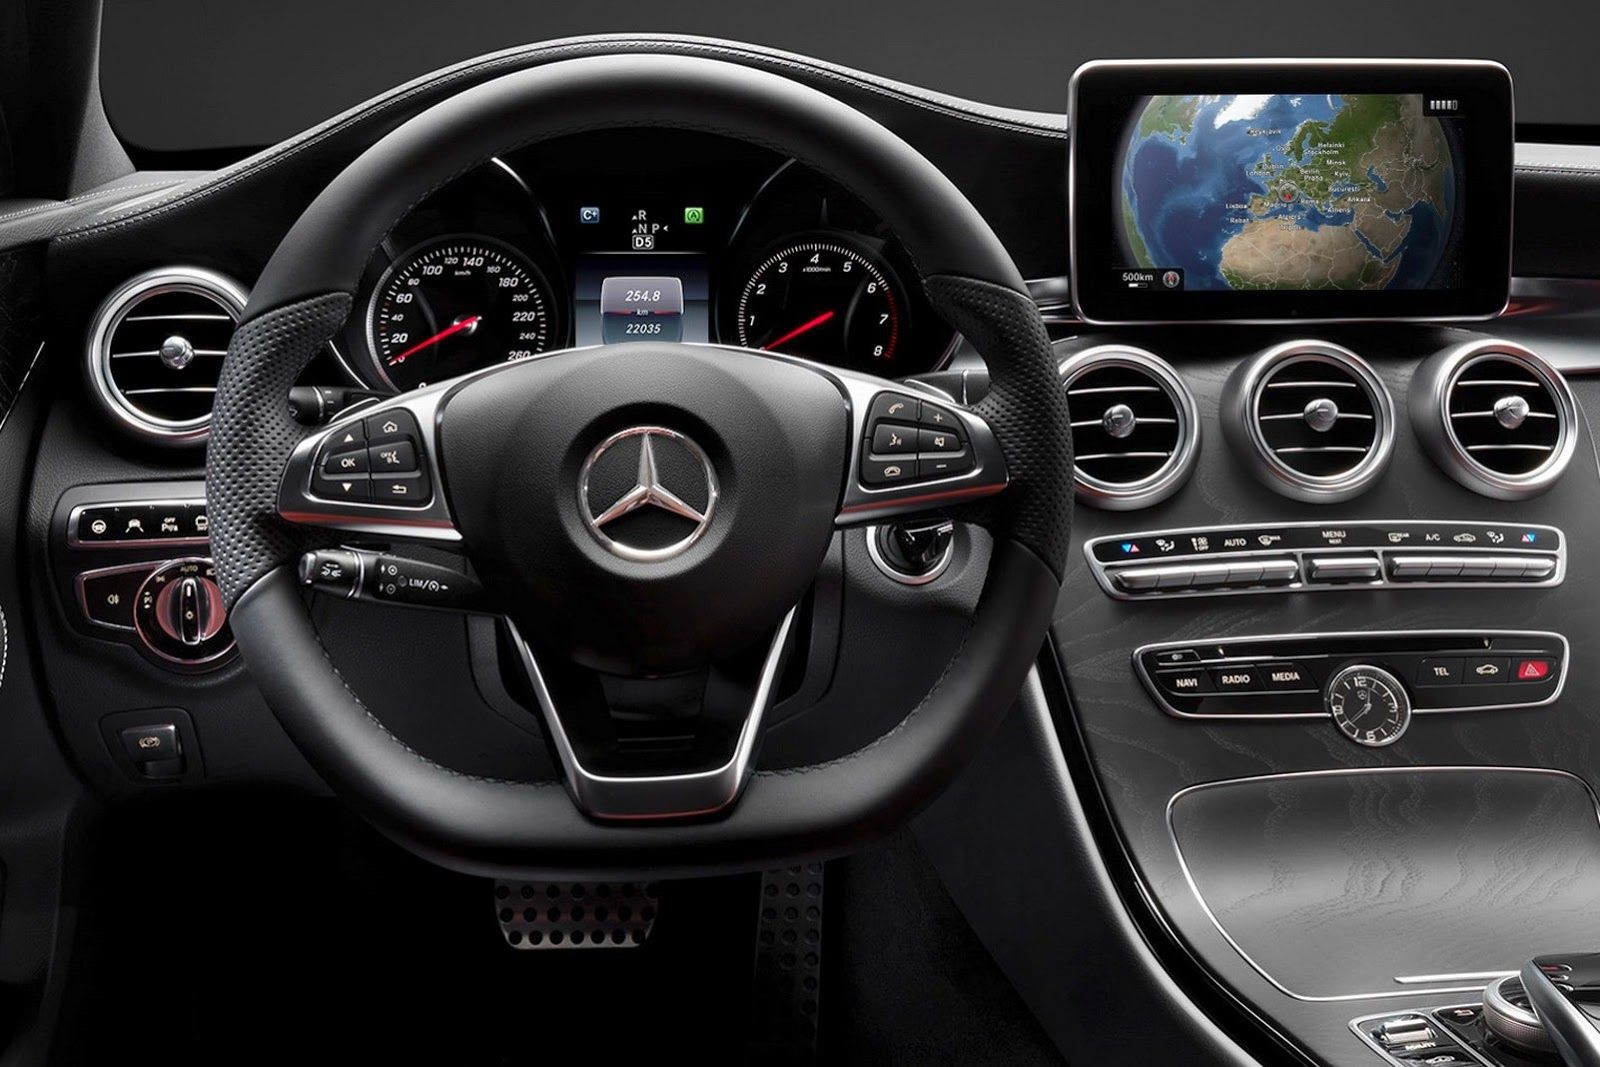 How To Download Navigation Maps On Sd Card For Car